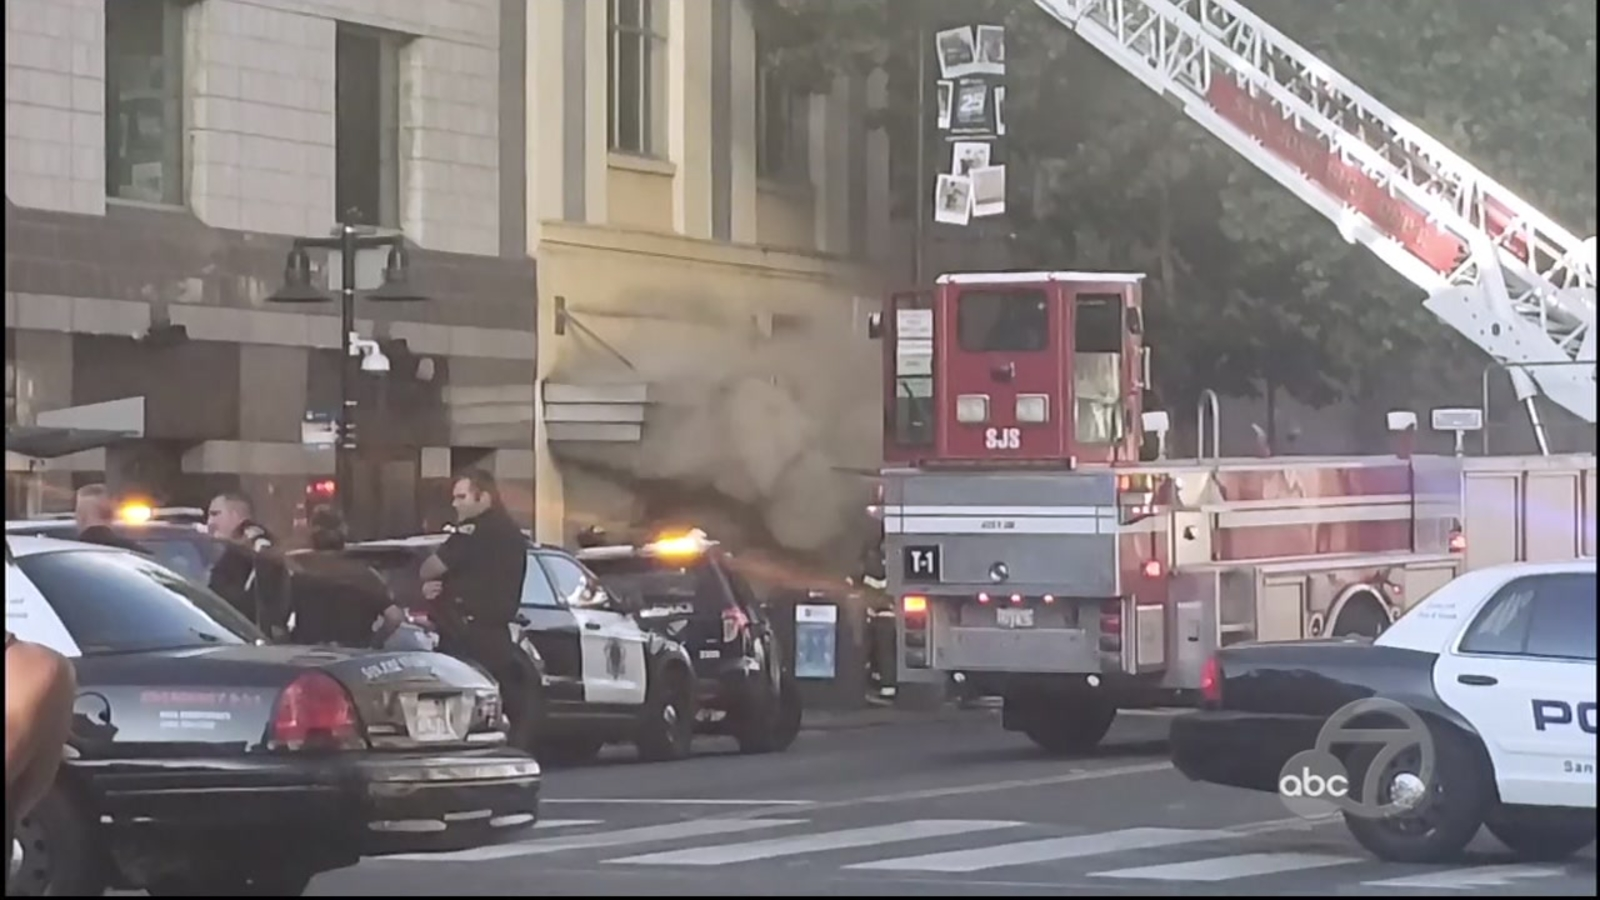 Arson suspected in 3-alarm fire in Downtown San Jose, authorities say